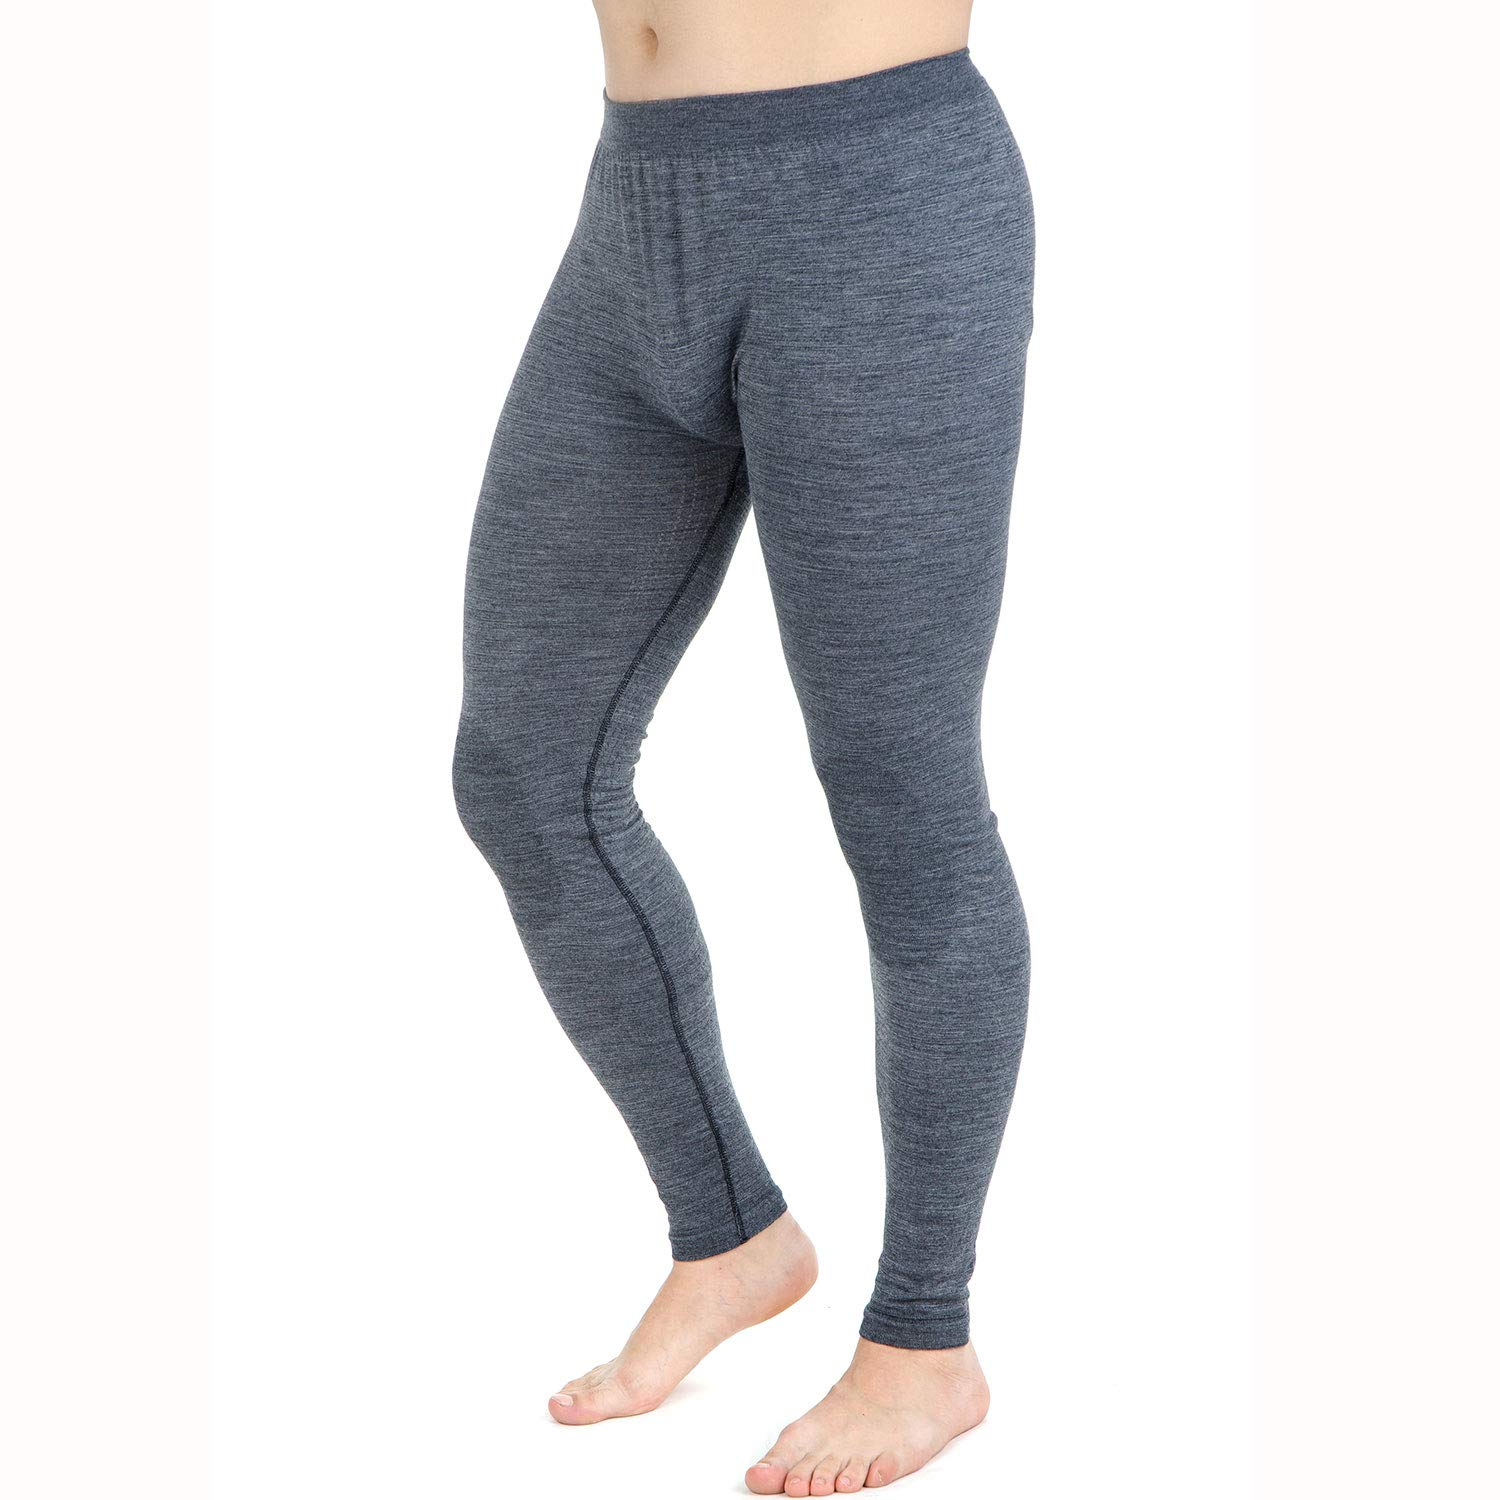 c5eaa16e2b8b Amazon.com: Wool Skiing Tights – Thermal Lightweight Compression Leggings  Base Layer – Warm Ski Underwear: Clothing